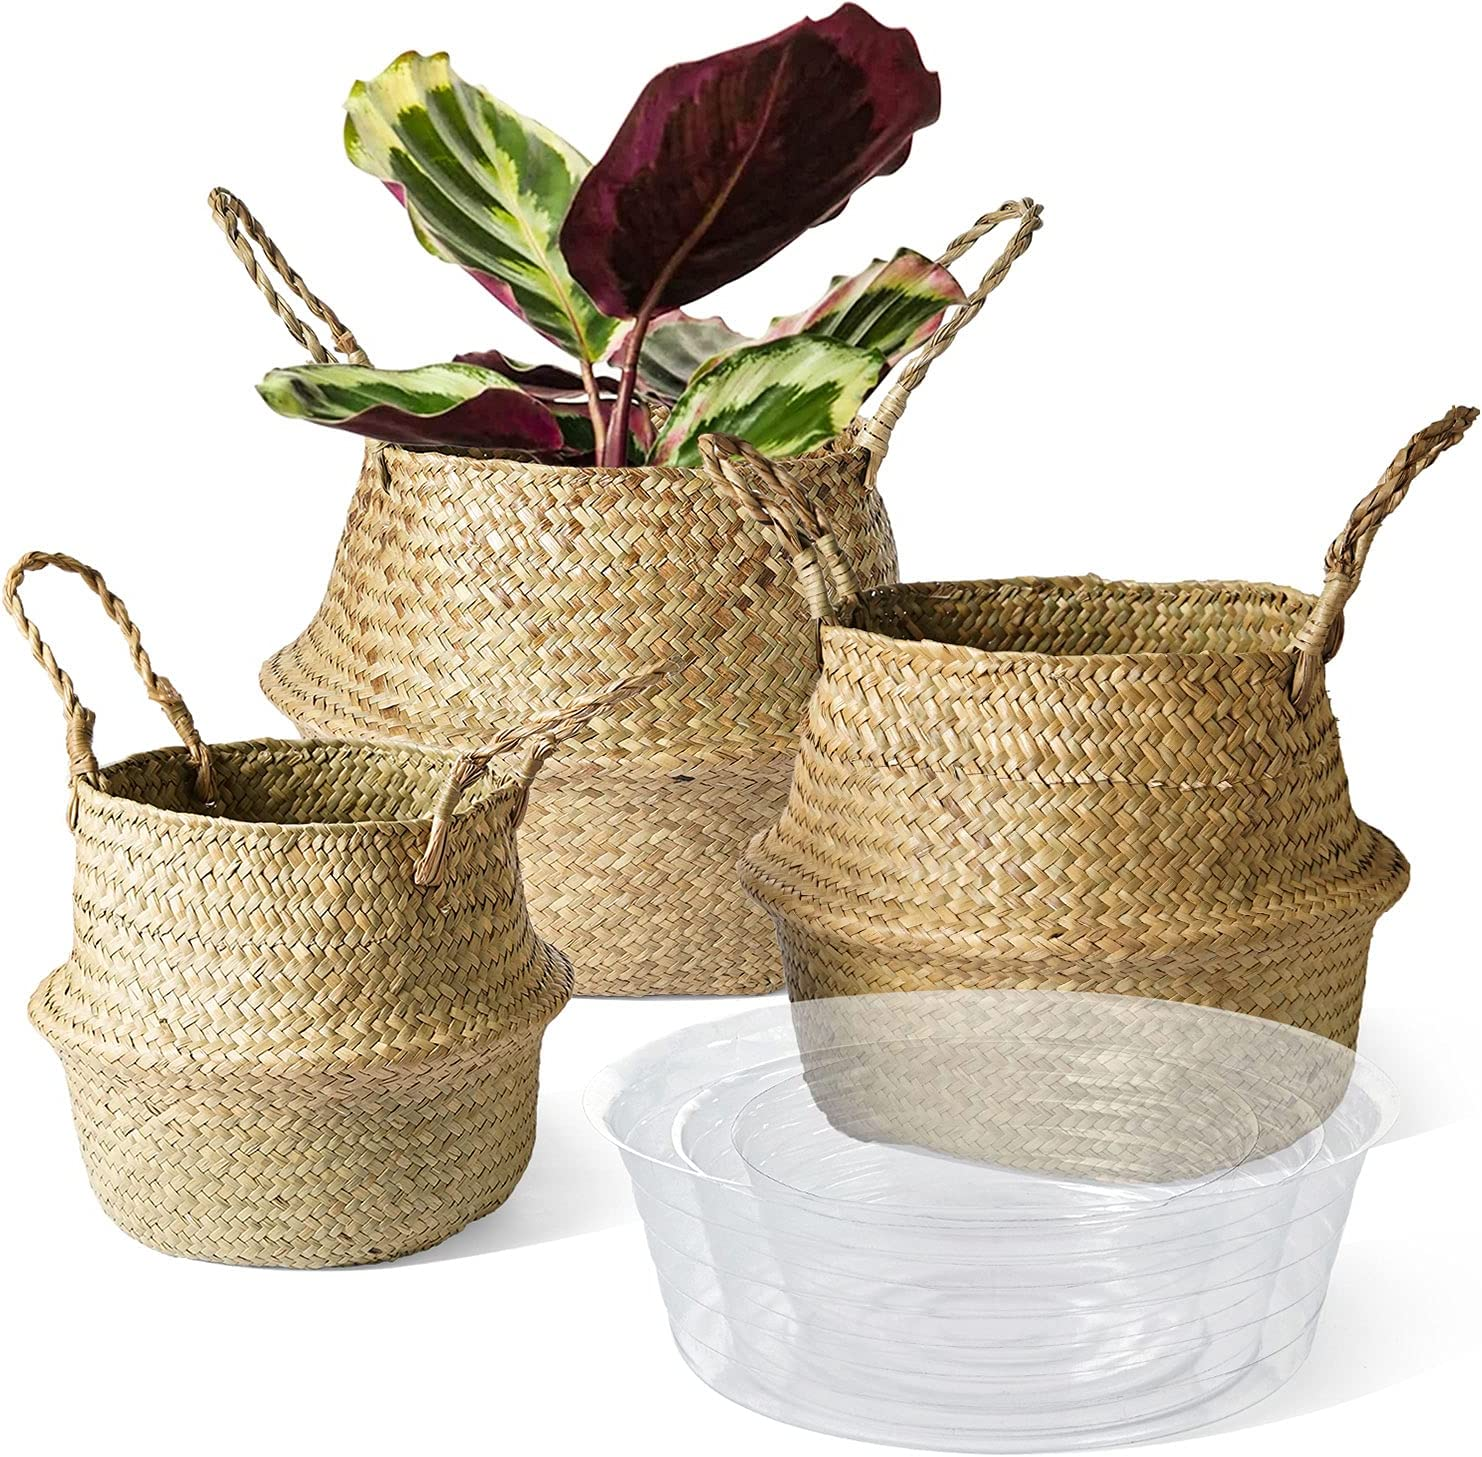 LE Max 74% OFF TAUCI Ranking TOP19 Plant Baskets with Seagrass Basket Tray Woven Planter